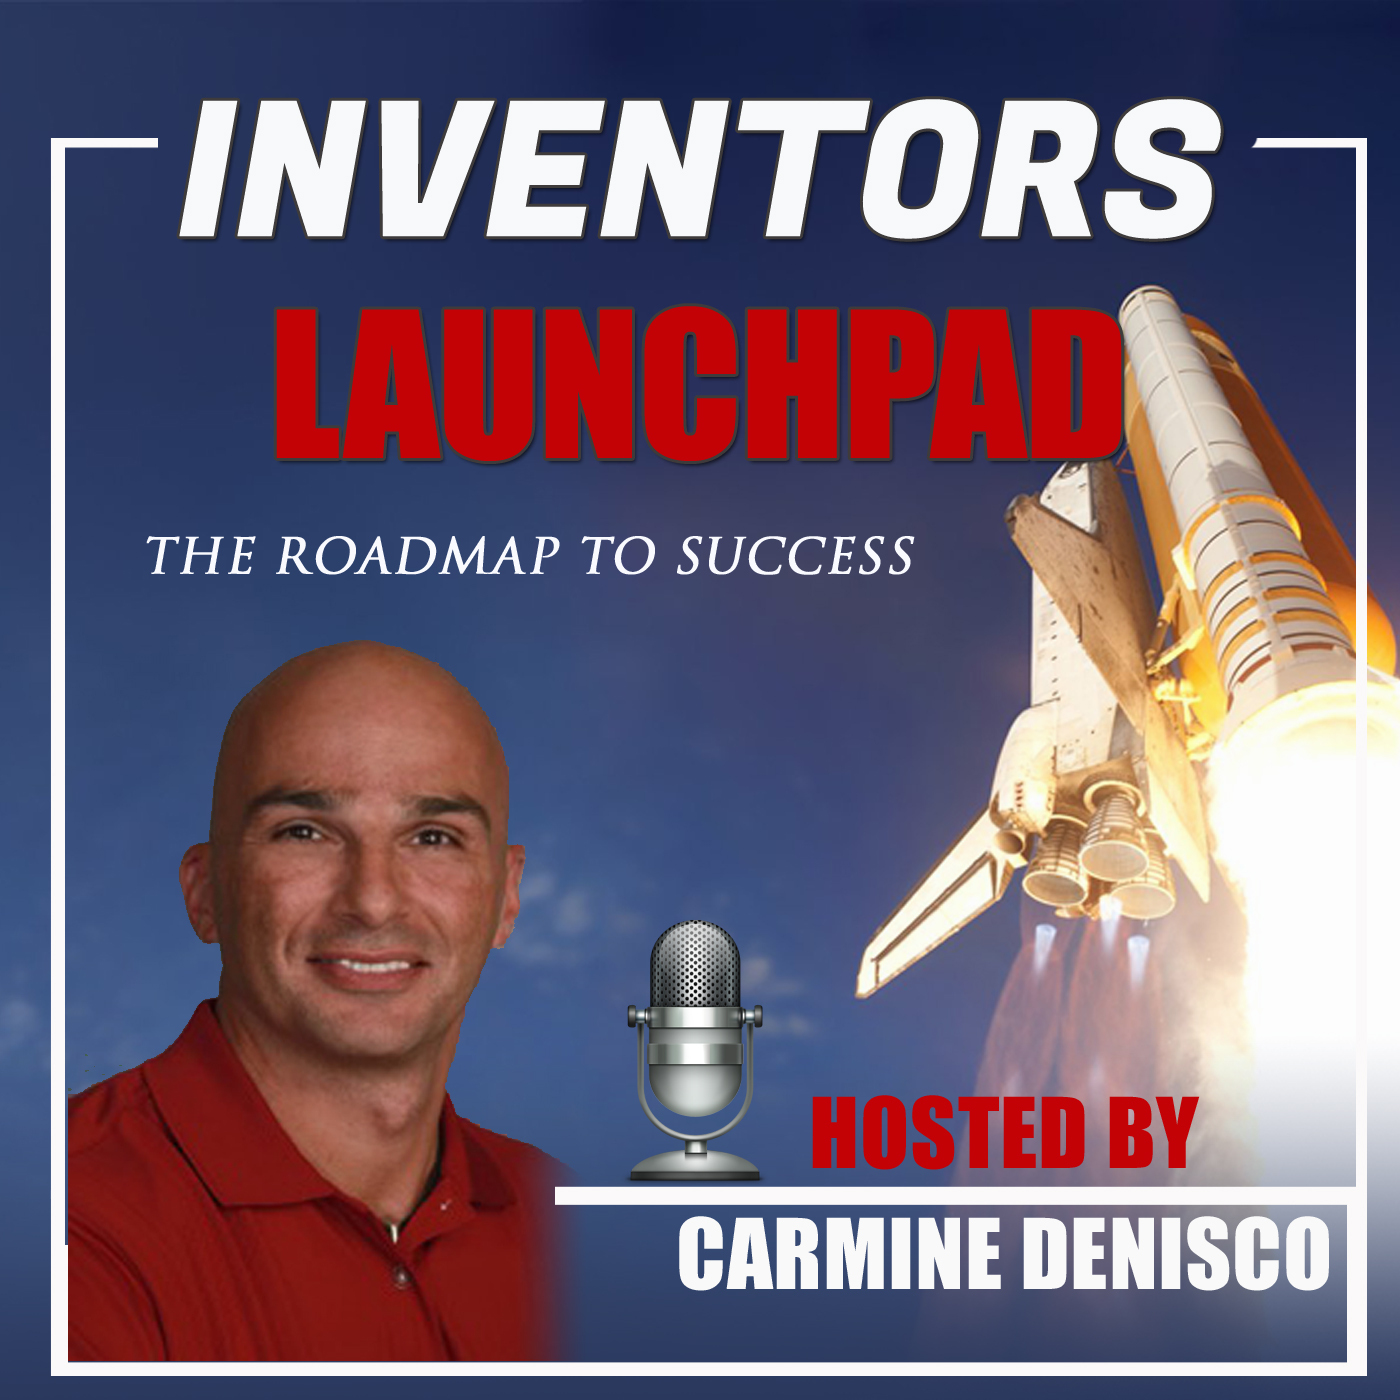 The Roadmap to Success Hosted by Carmine Denisco